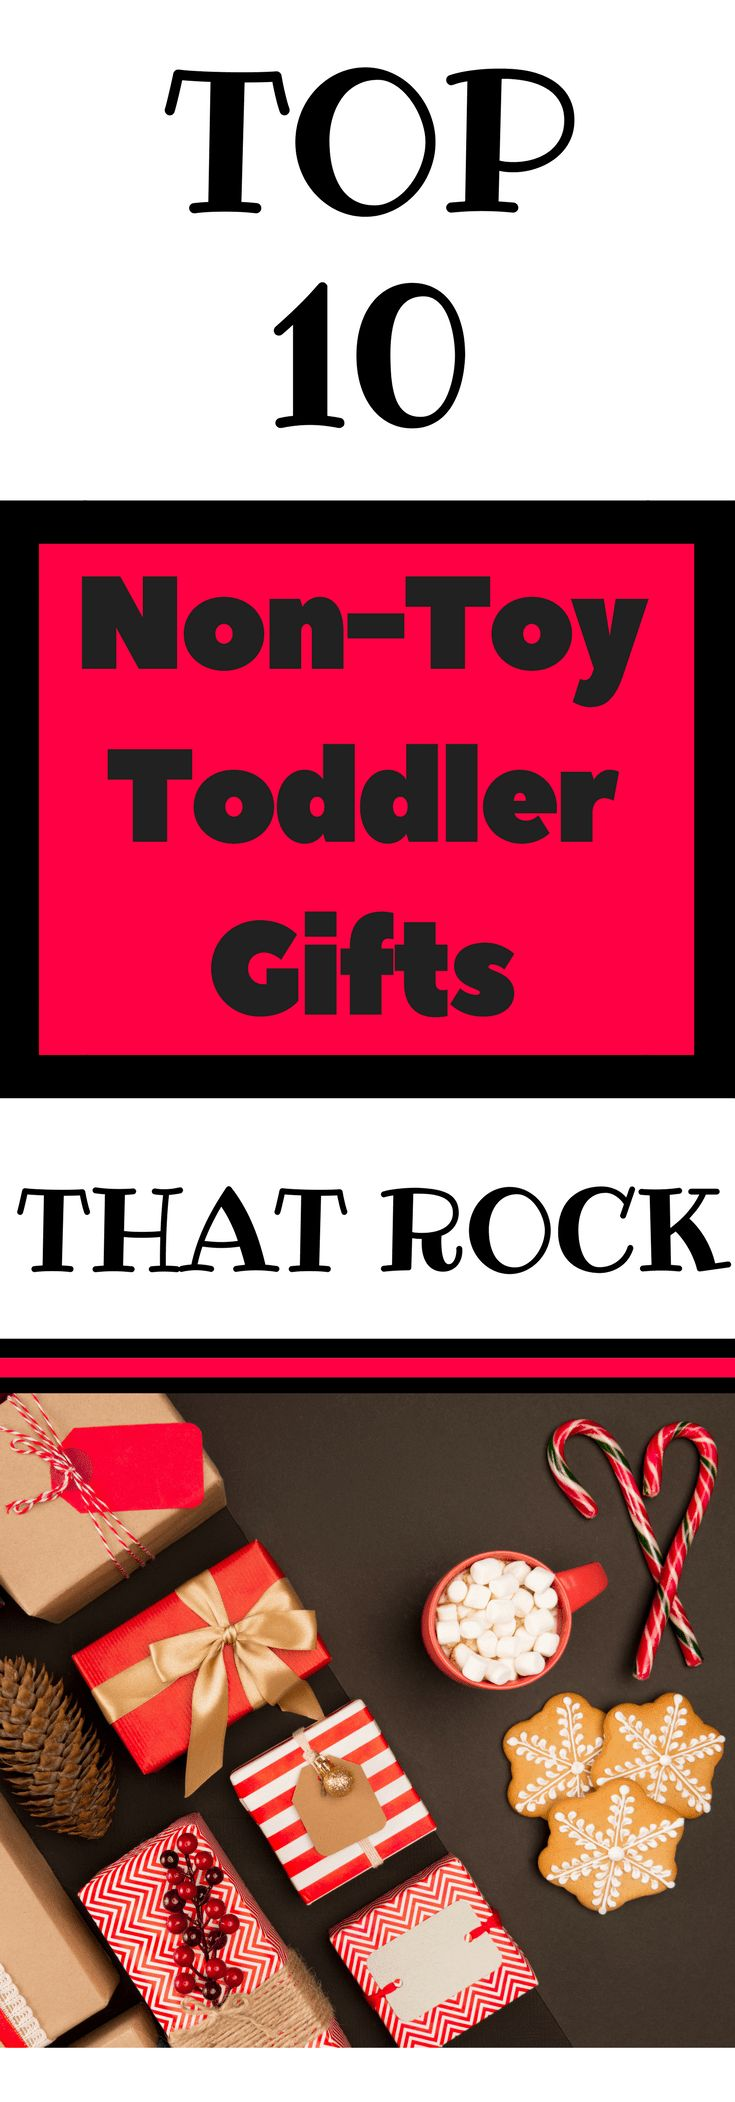 Are you looking for the perfect gift for your toddler but don't want anymore toys? Check out these top 10 affordable non-toy gifts that won't clutter your house via Parenting Expert to Mom. #Toddlergifts #nontoygifts #Christmasshopping